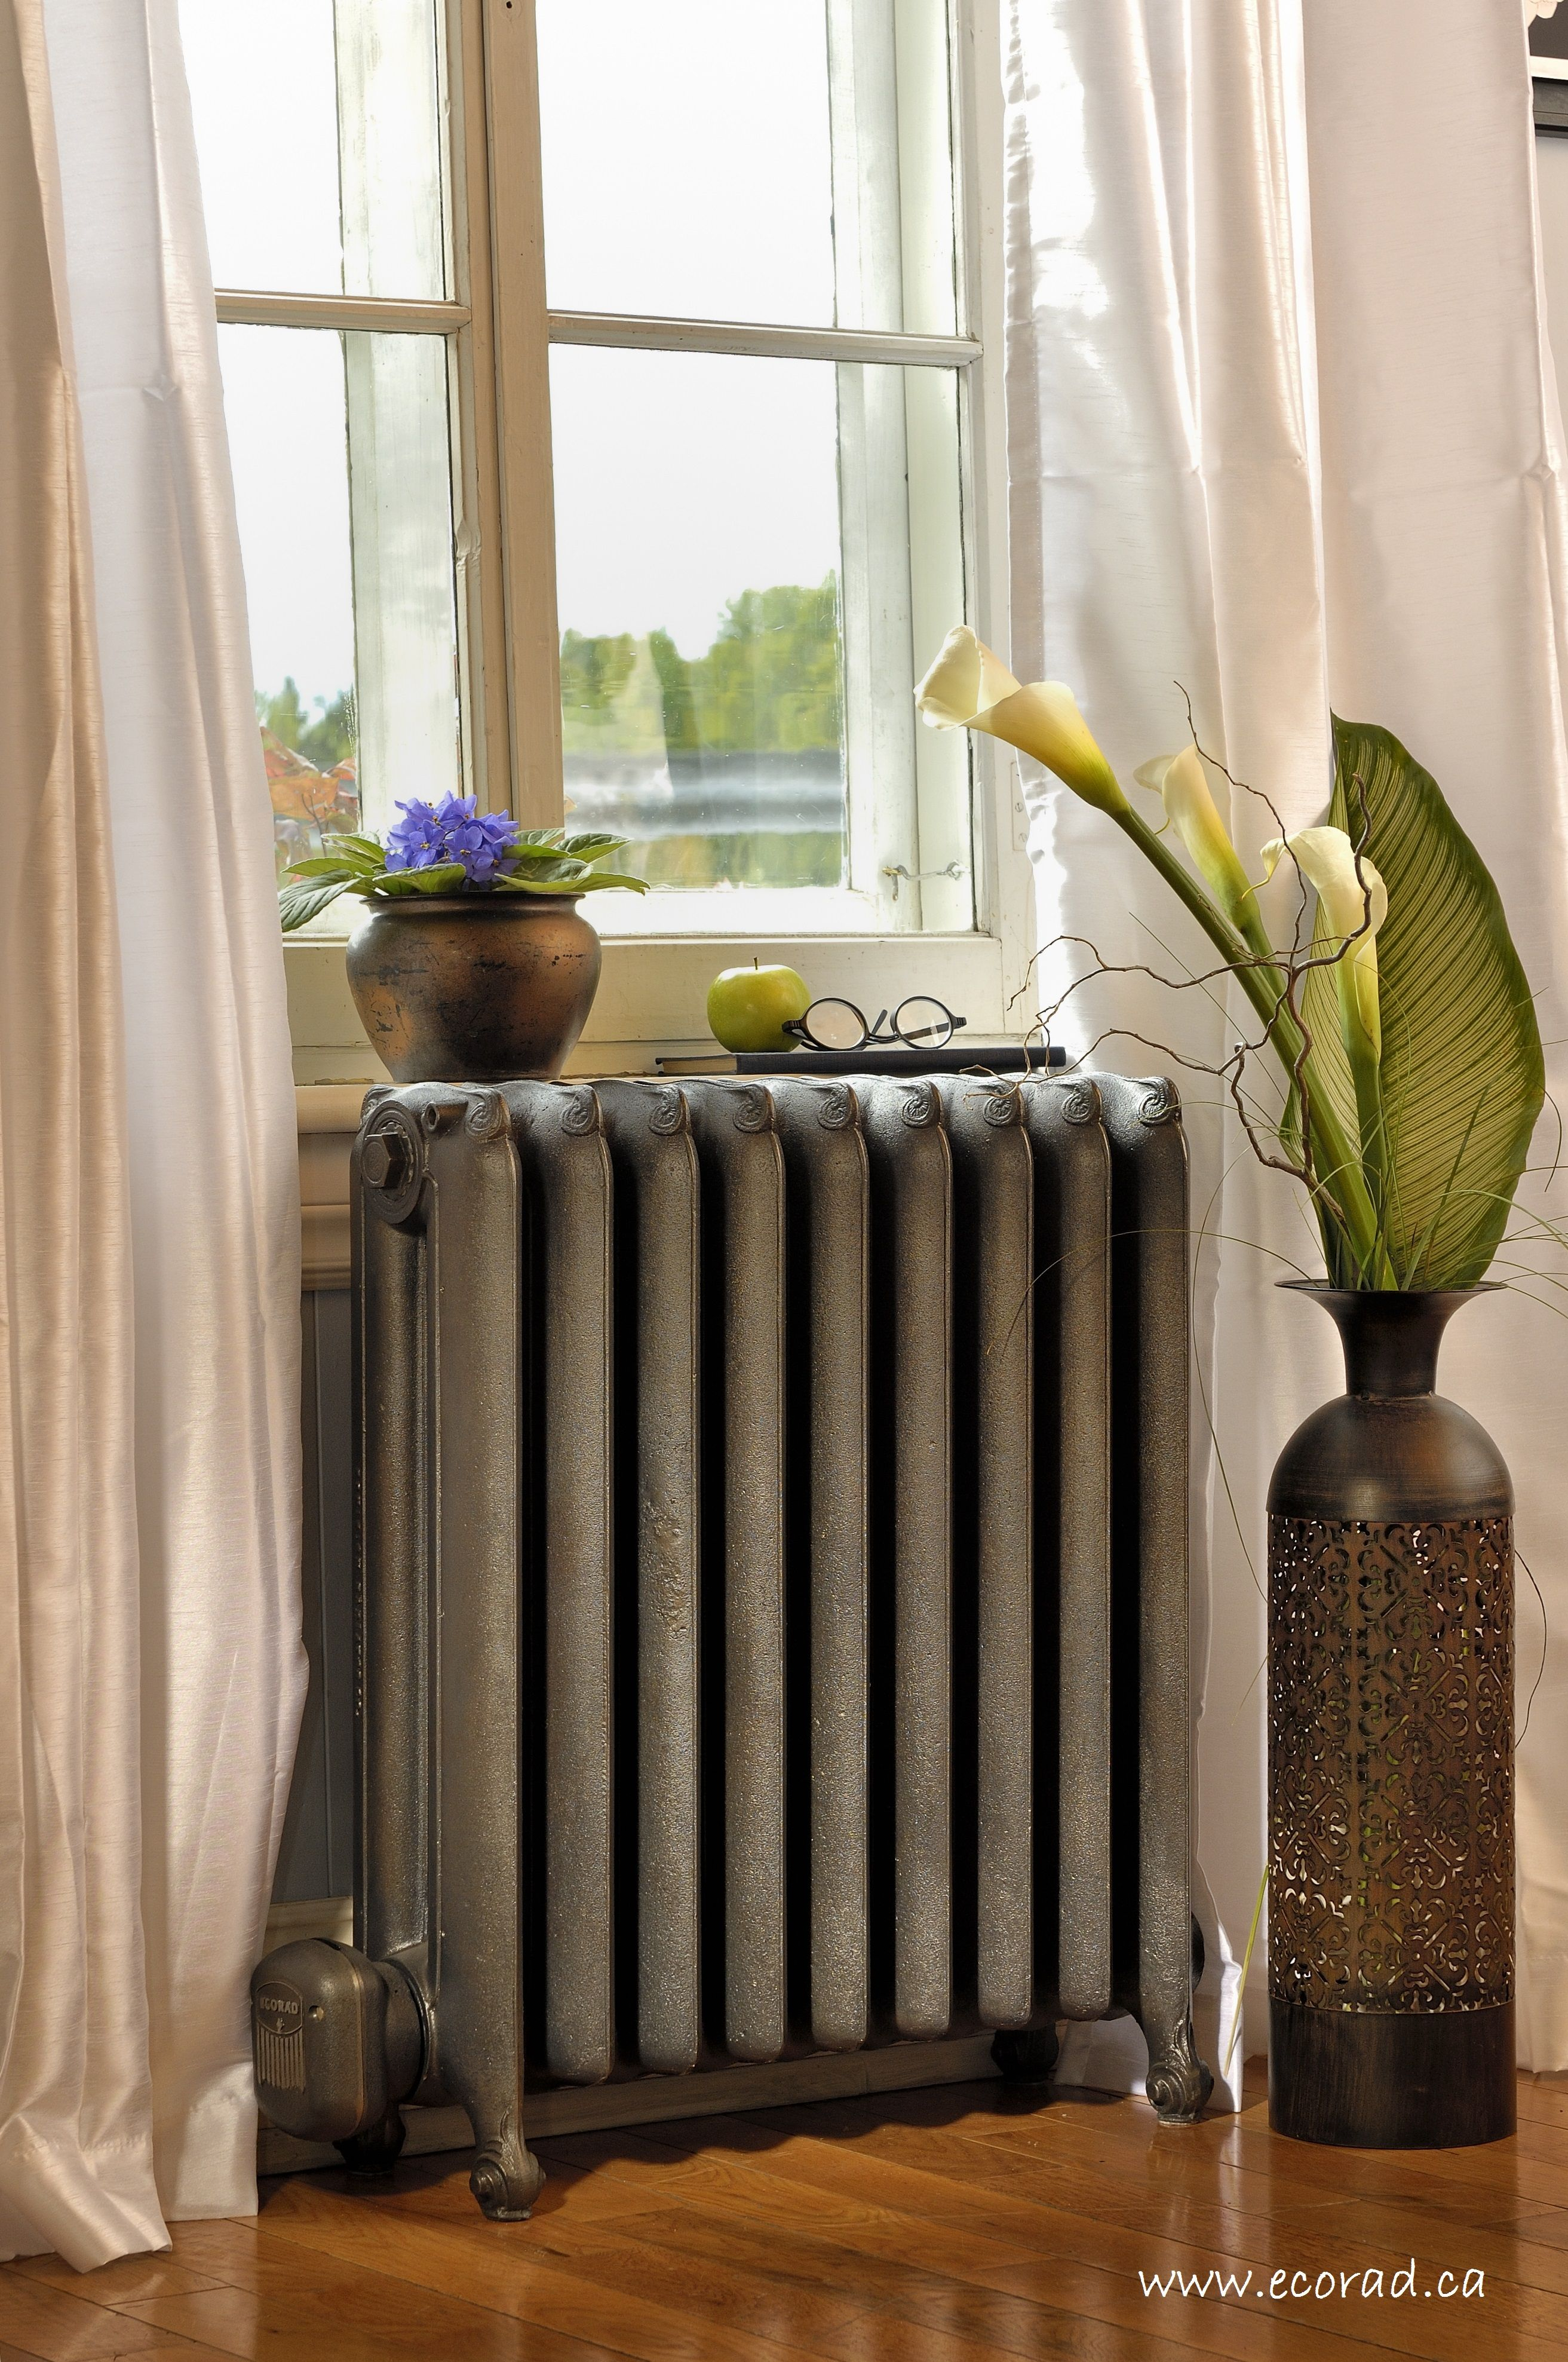 dominion model made by ecorad cast iron radiator radiateur. Black Bedroom Furniture Sets. Home Design Ideas